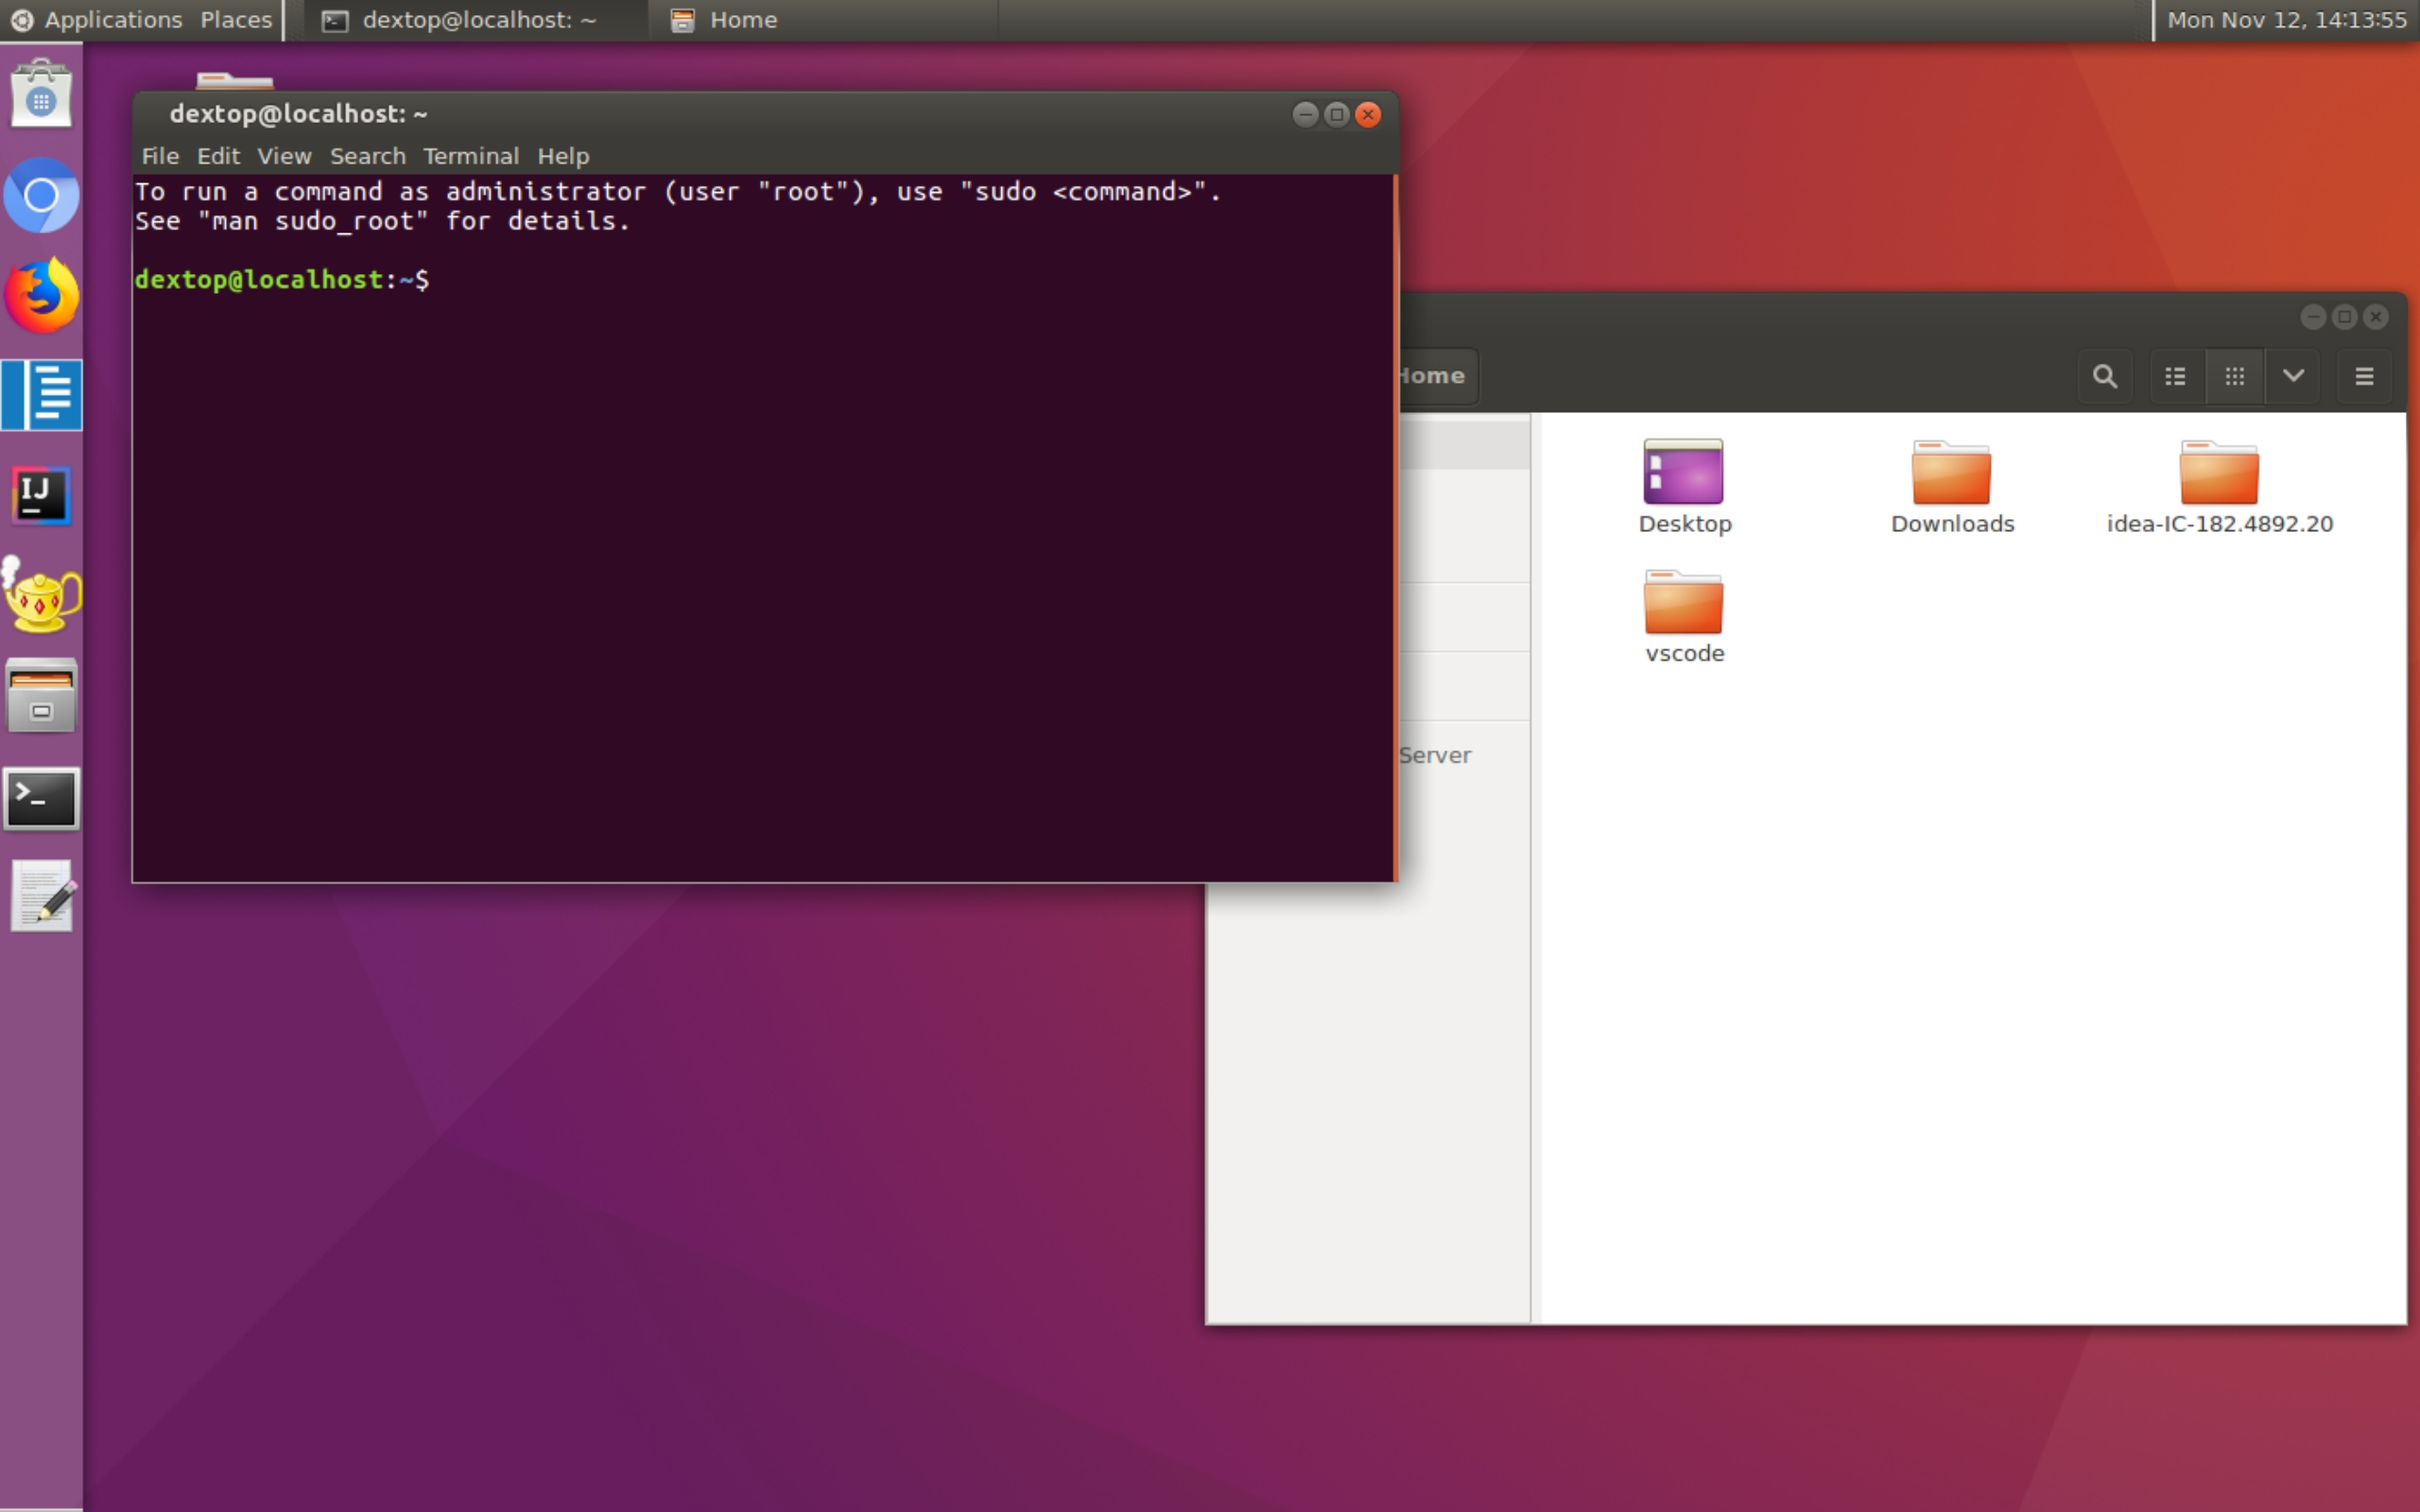 Samsung's Linux on DeX turns your phone into a Linux